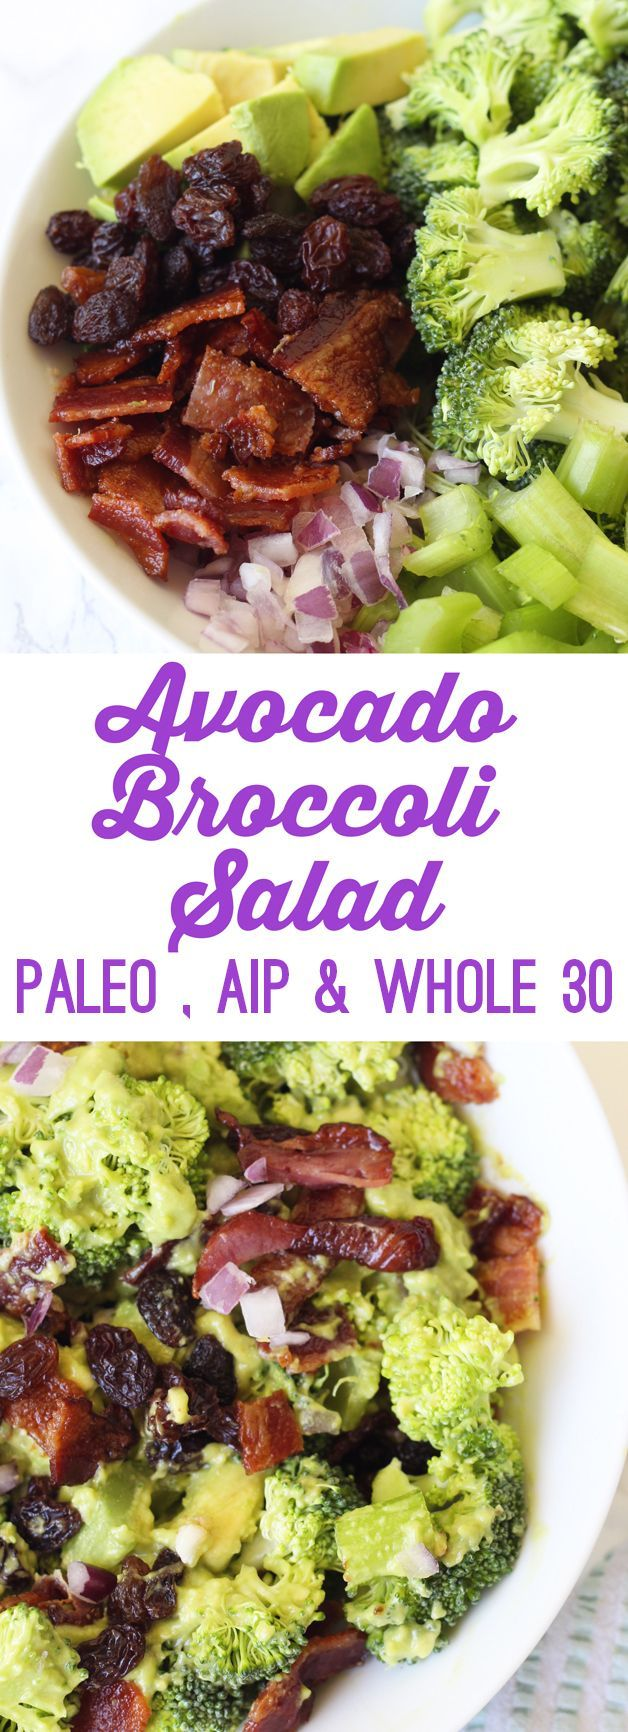 Avocado Bacon Broccoli Salad (Paleo, AIP, Whole 30)